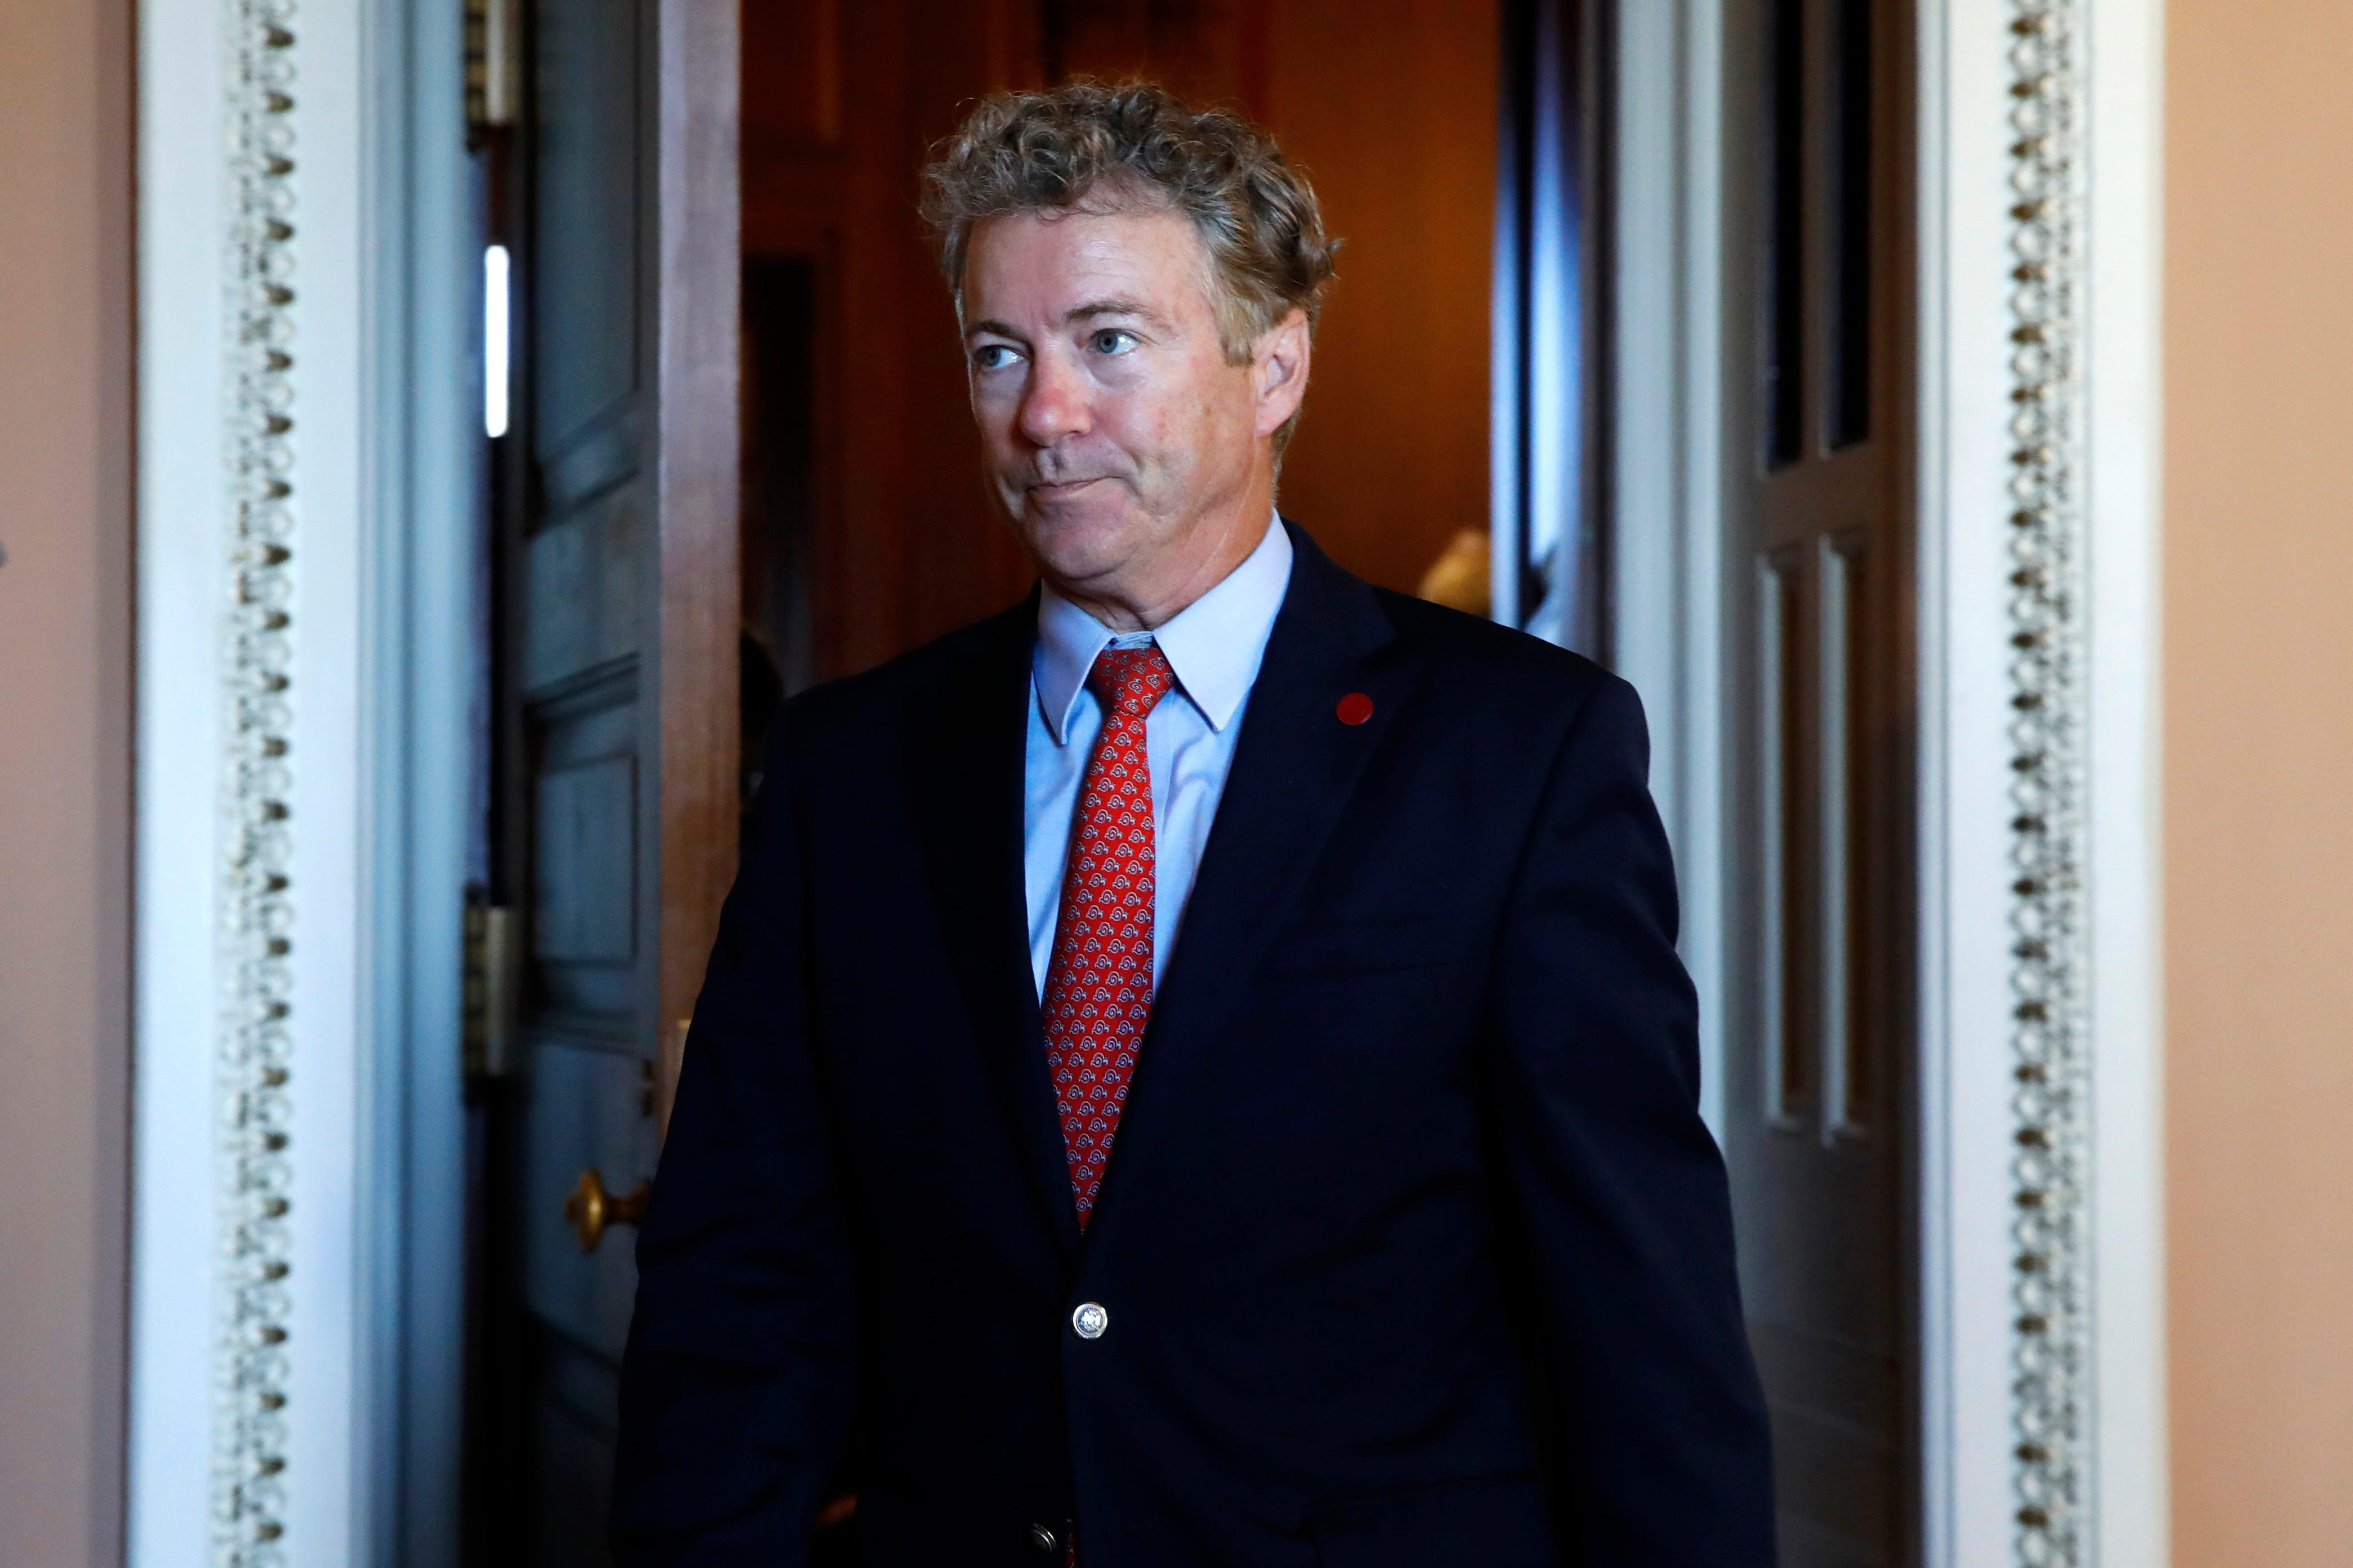 Video shows Rand Paul being 'verbally assaulted' by 'aggressive libs,' aide says